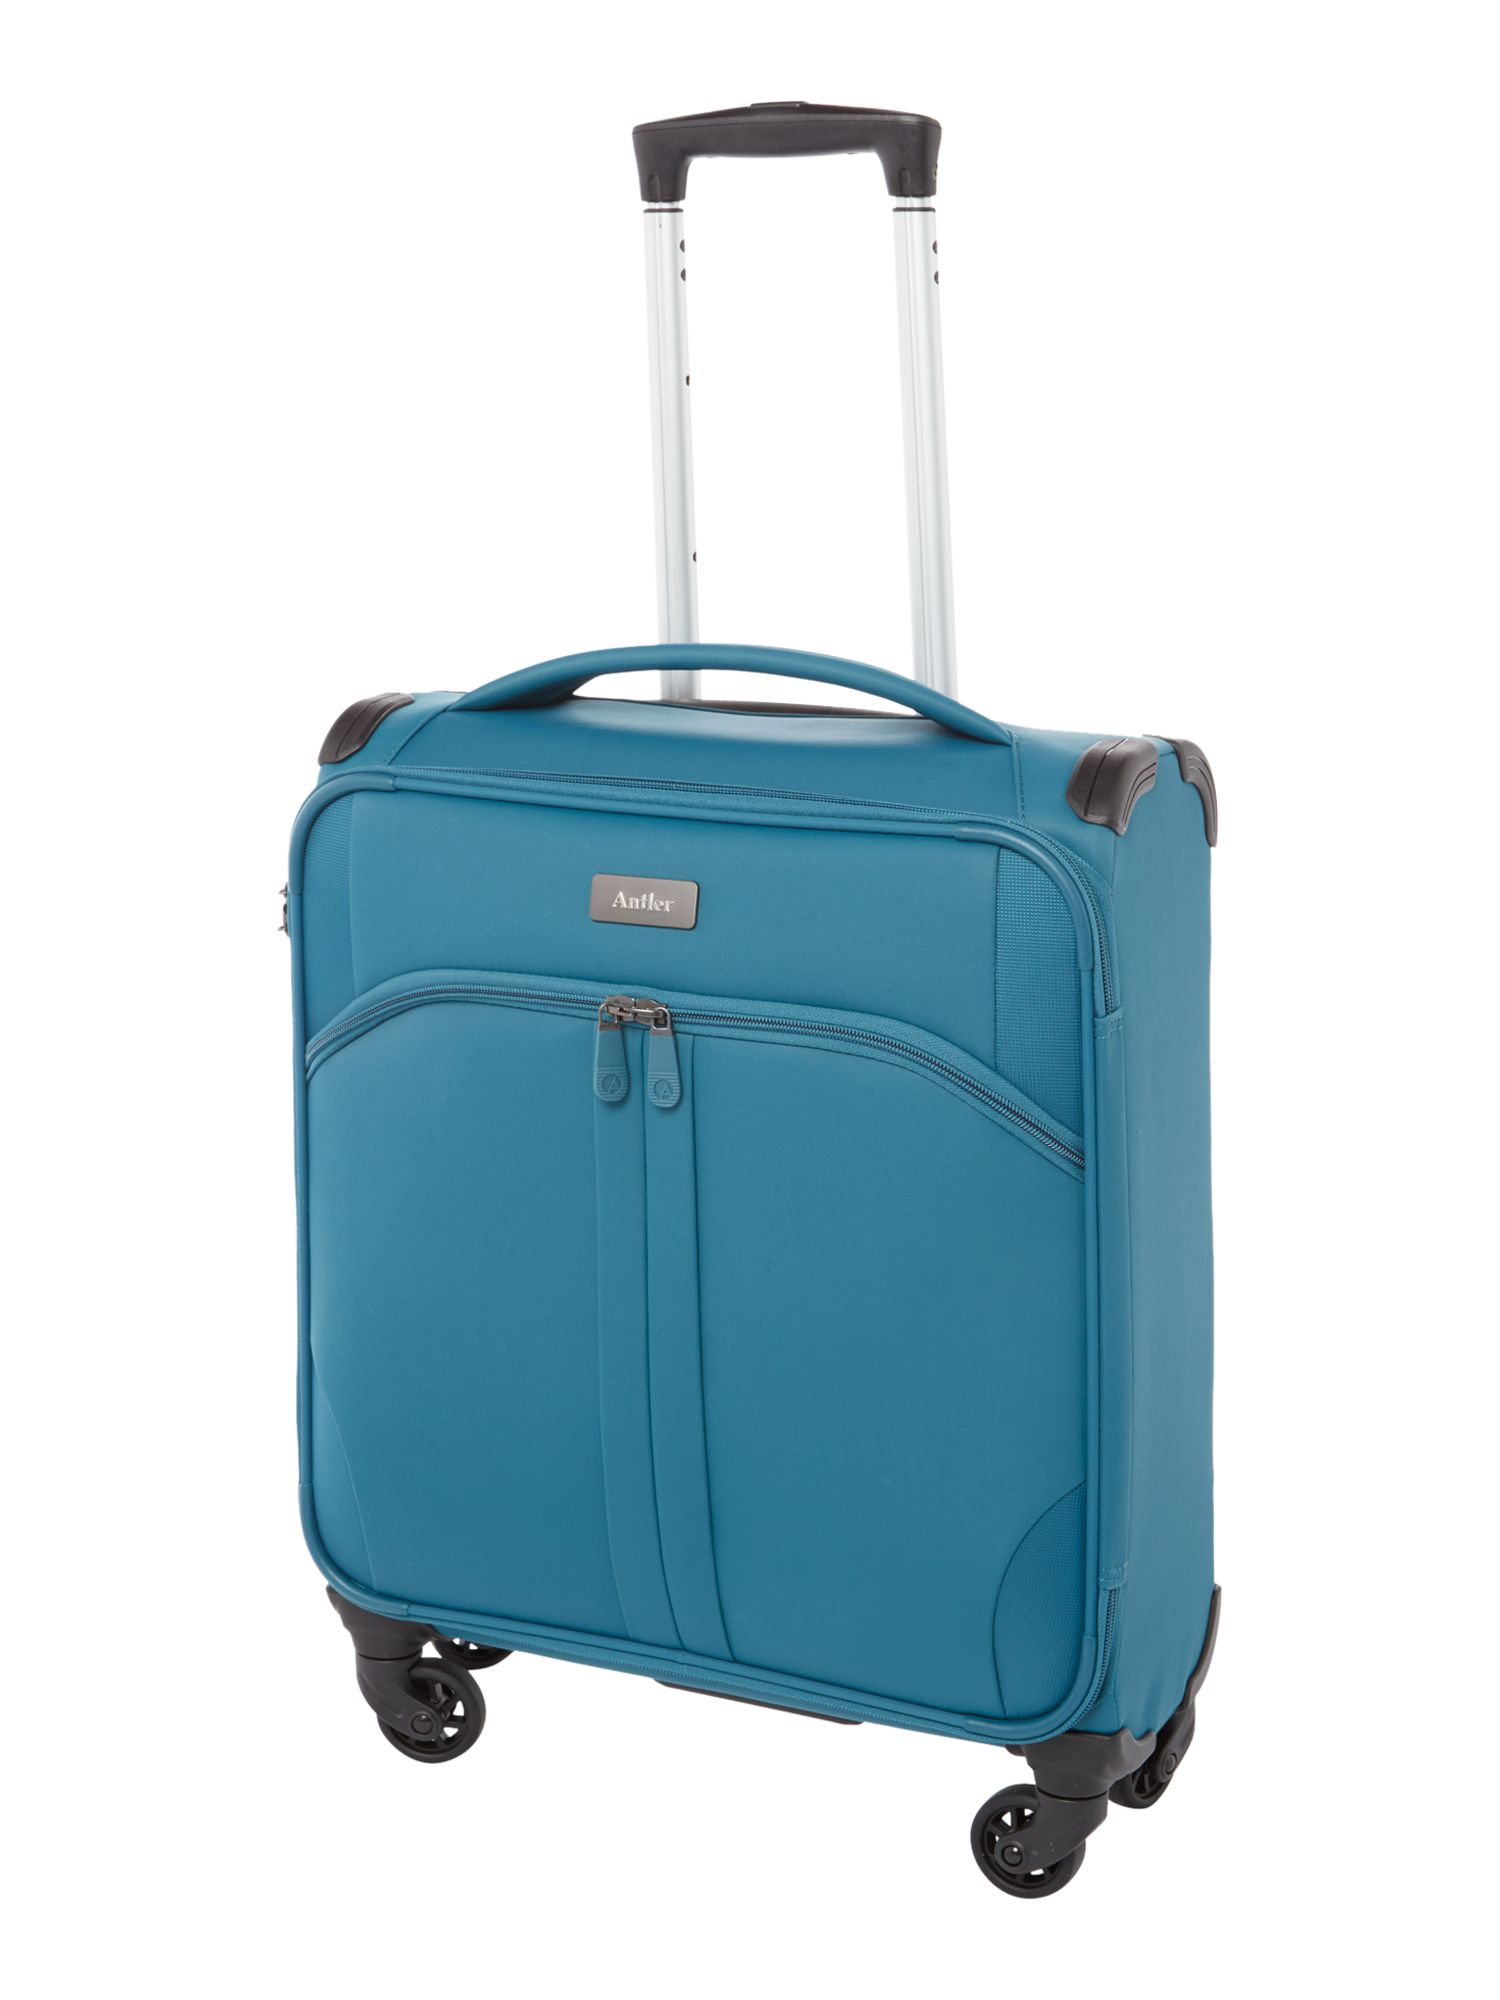 Antler Aire teal 4 wheel cabin suitcase Teal